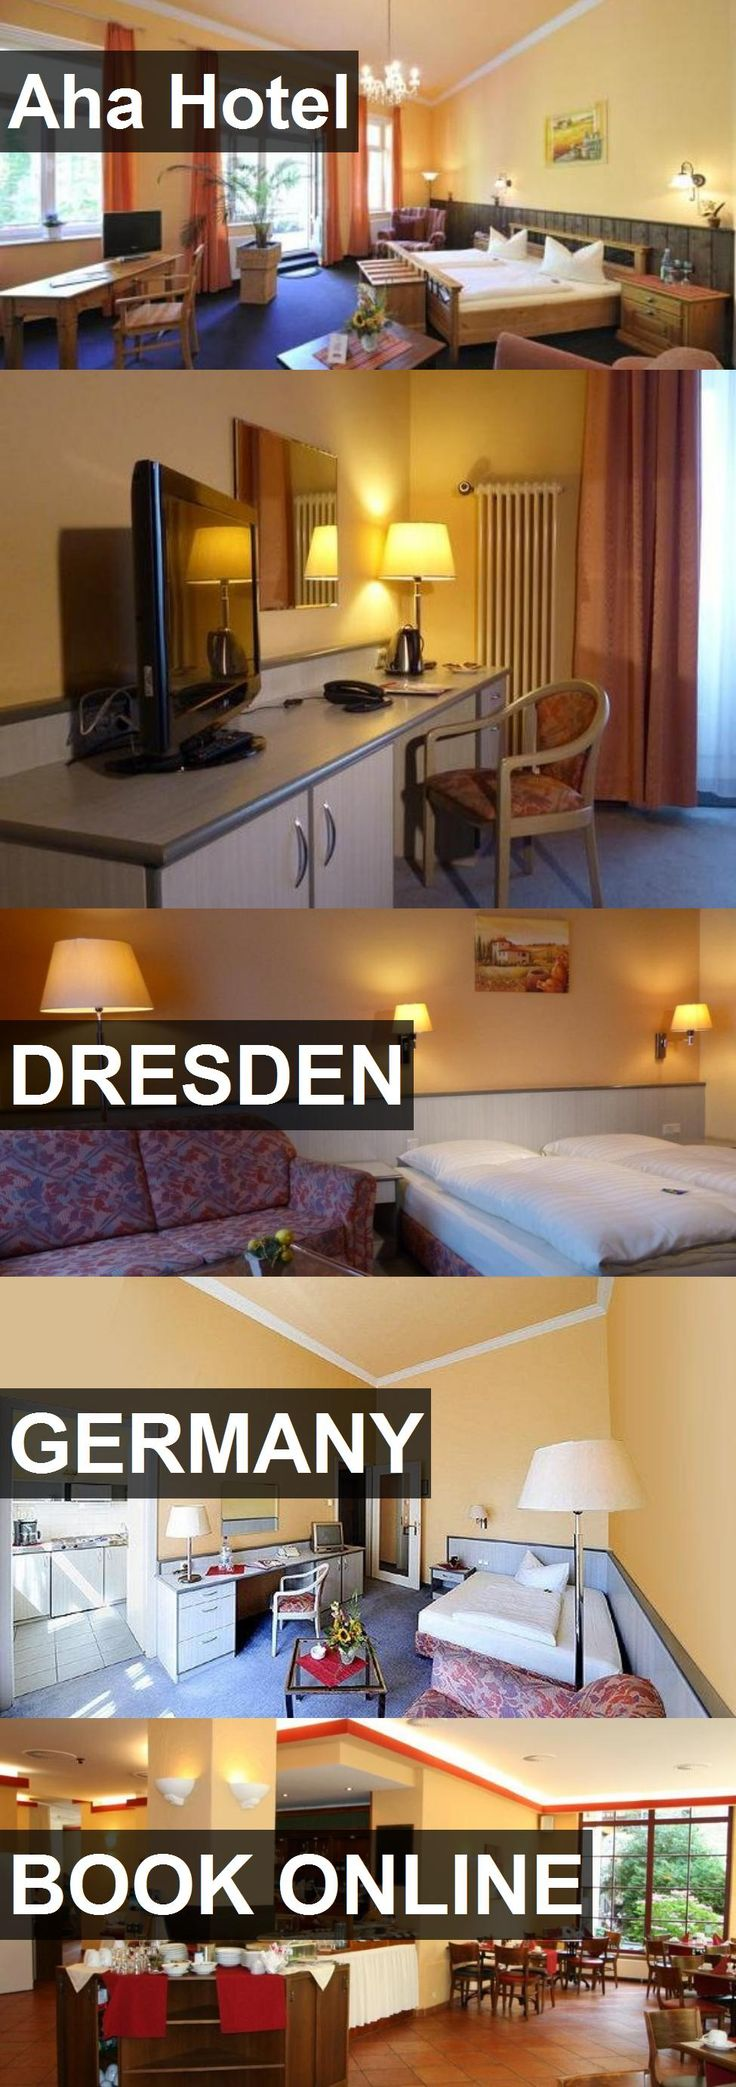 Aha Hotel in Dresden, Germany. For more information, photos, reviews and best prices please follow the link. #Germany #Dresden #travel #vacation #hotel